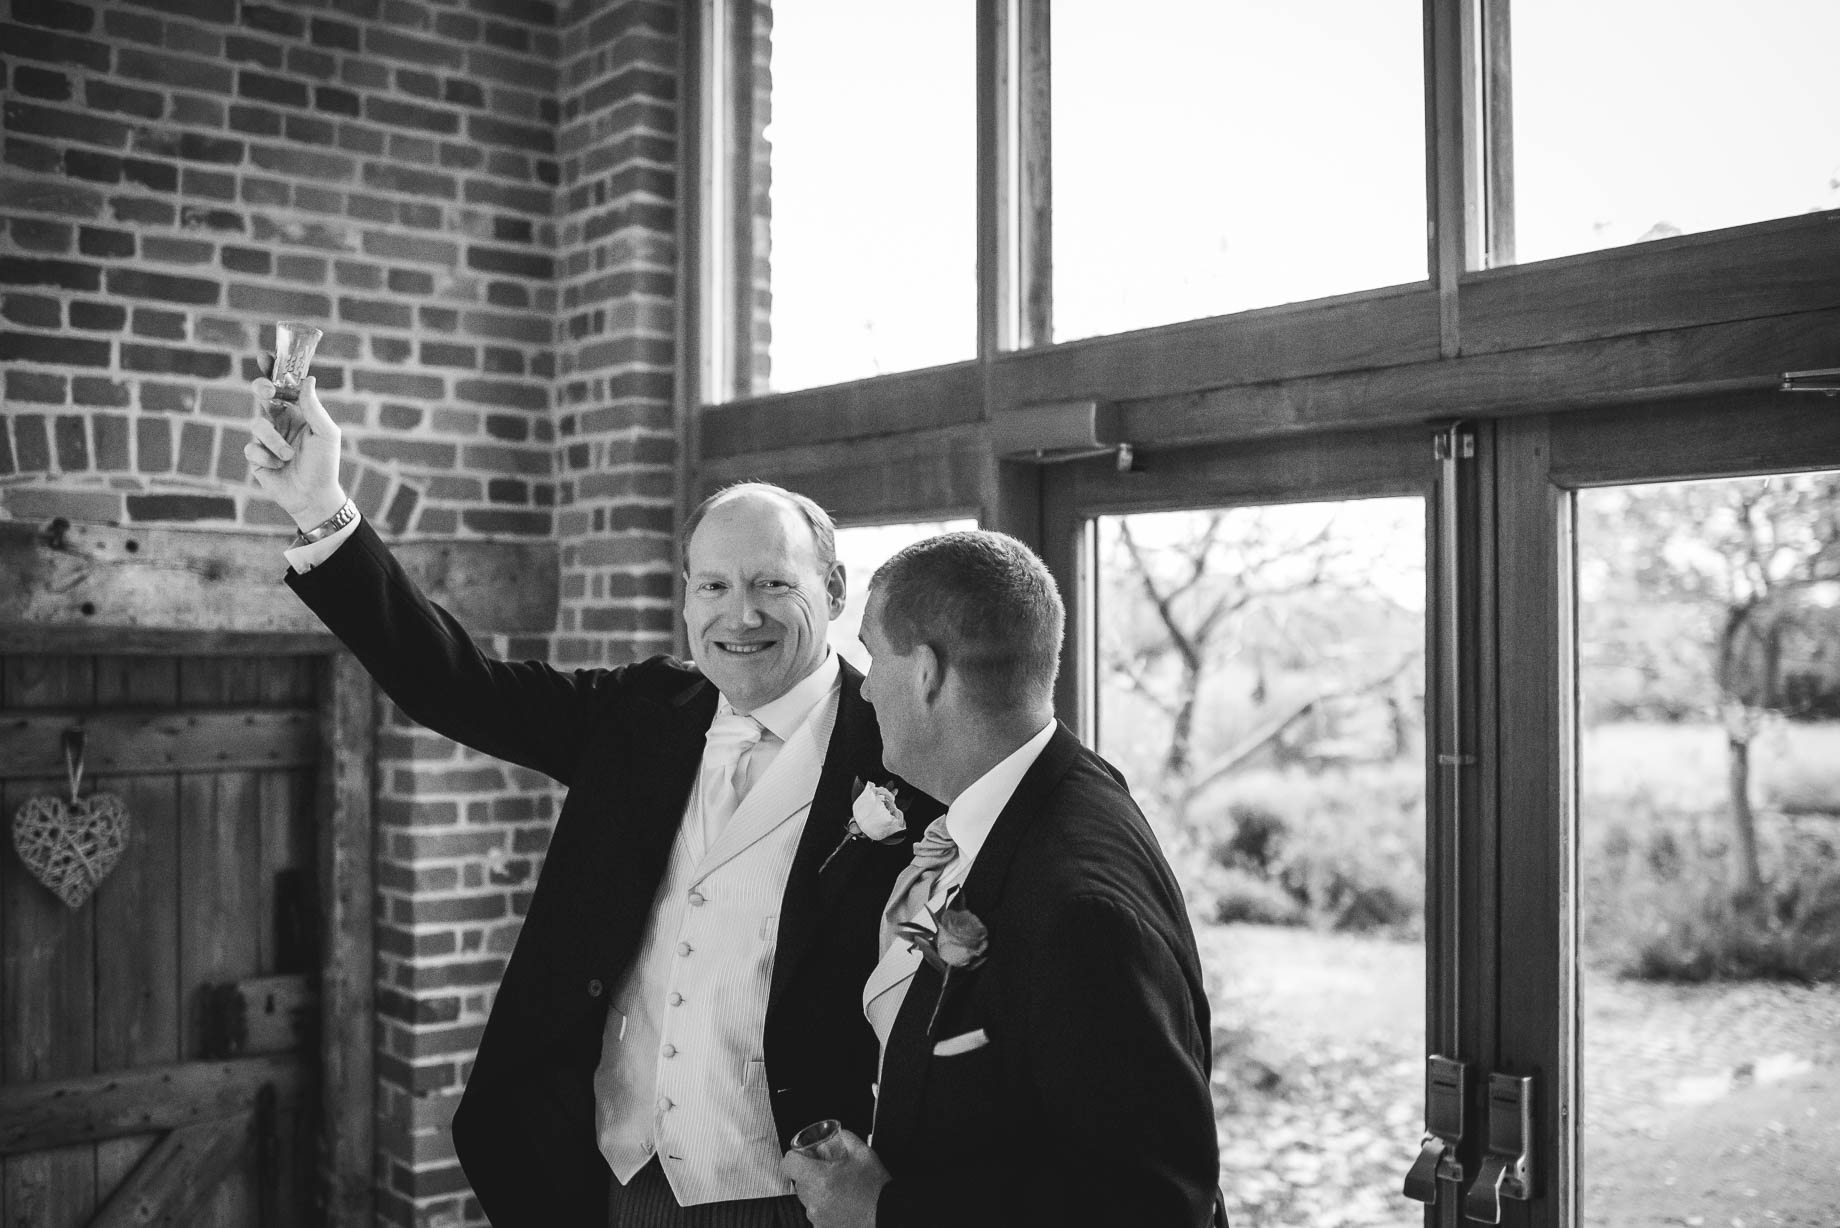 Hampshire-wedding-photography-Charlie-and-Tim-126-of-143